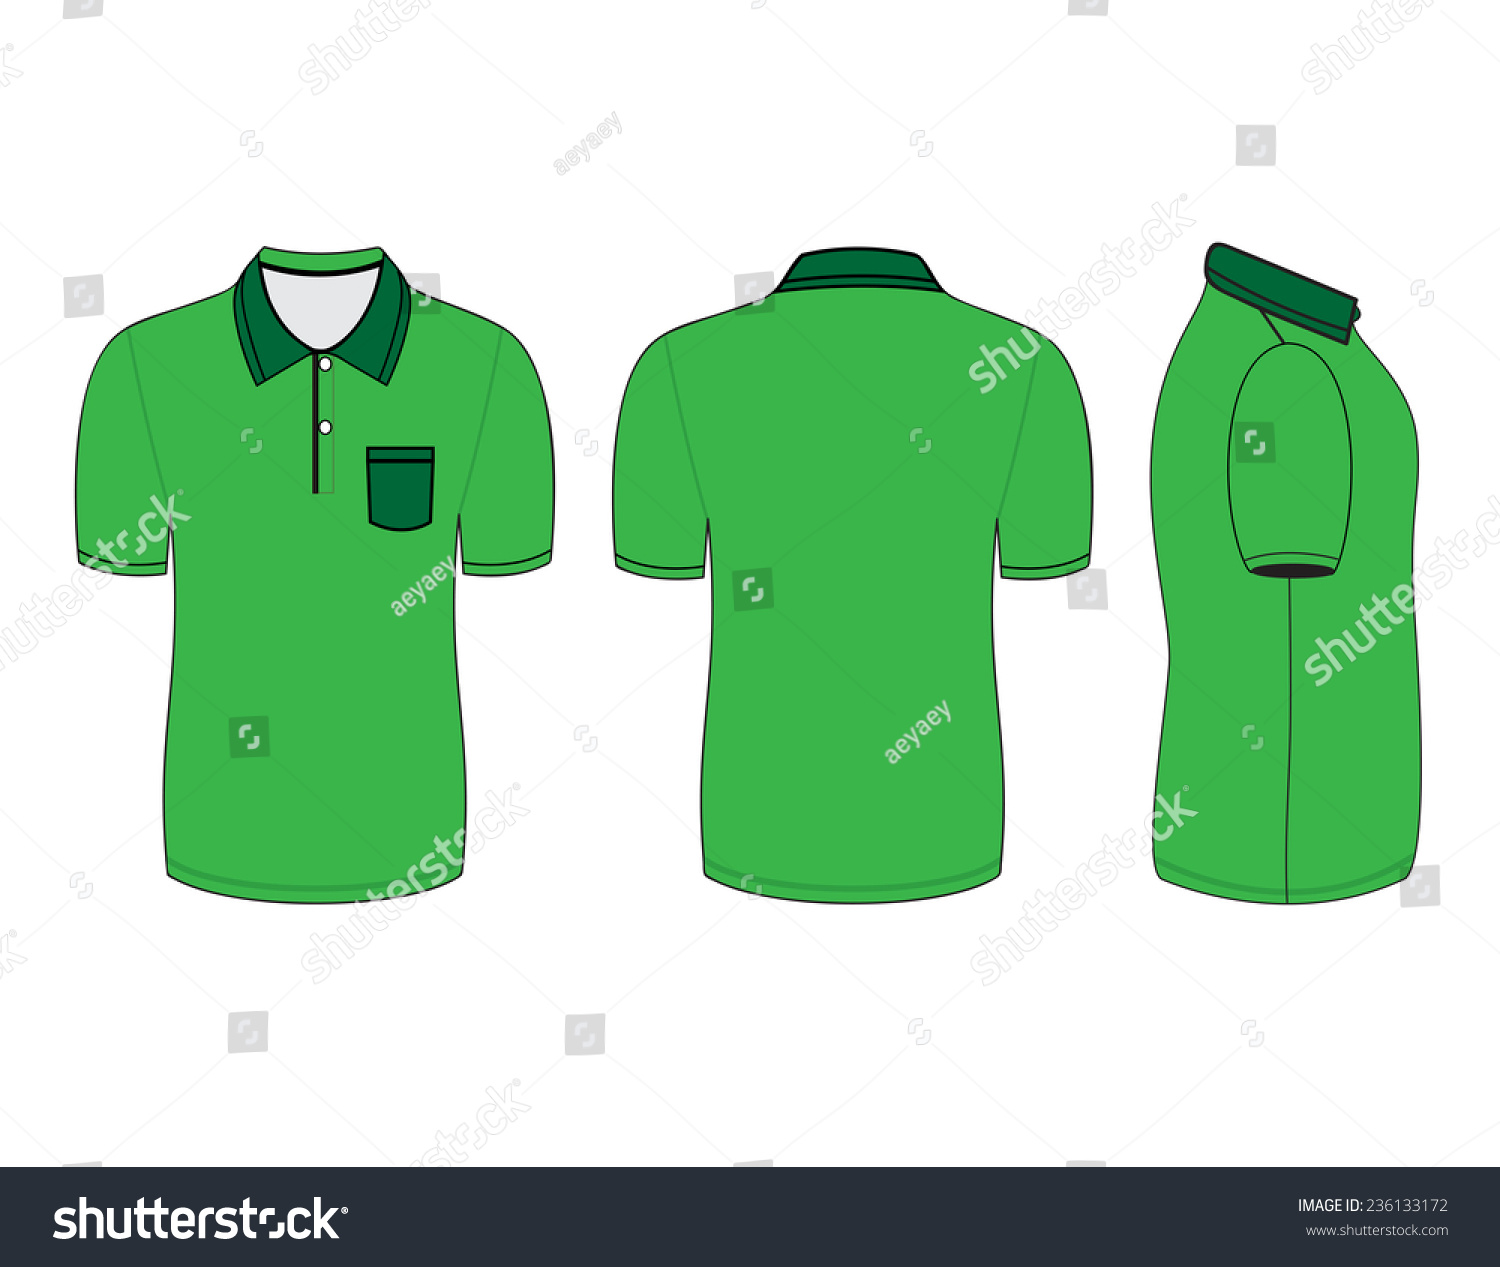 490b9b1aa polo shirt design templates (front, back and side views). Vector  illustration #